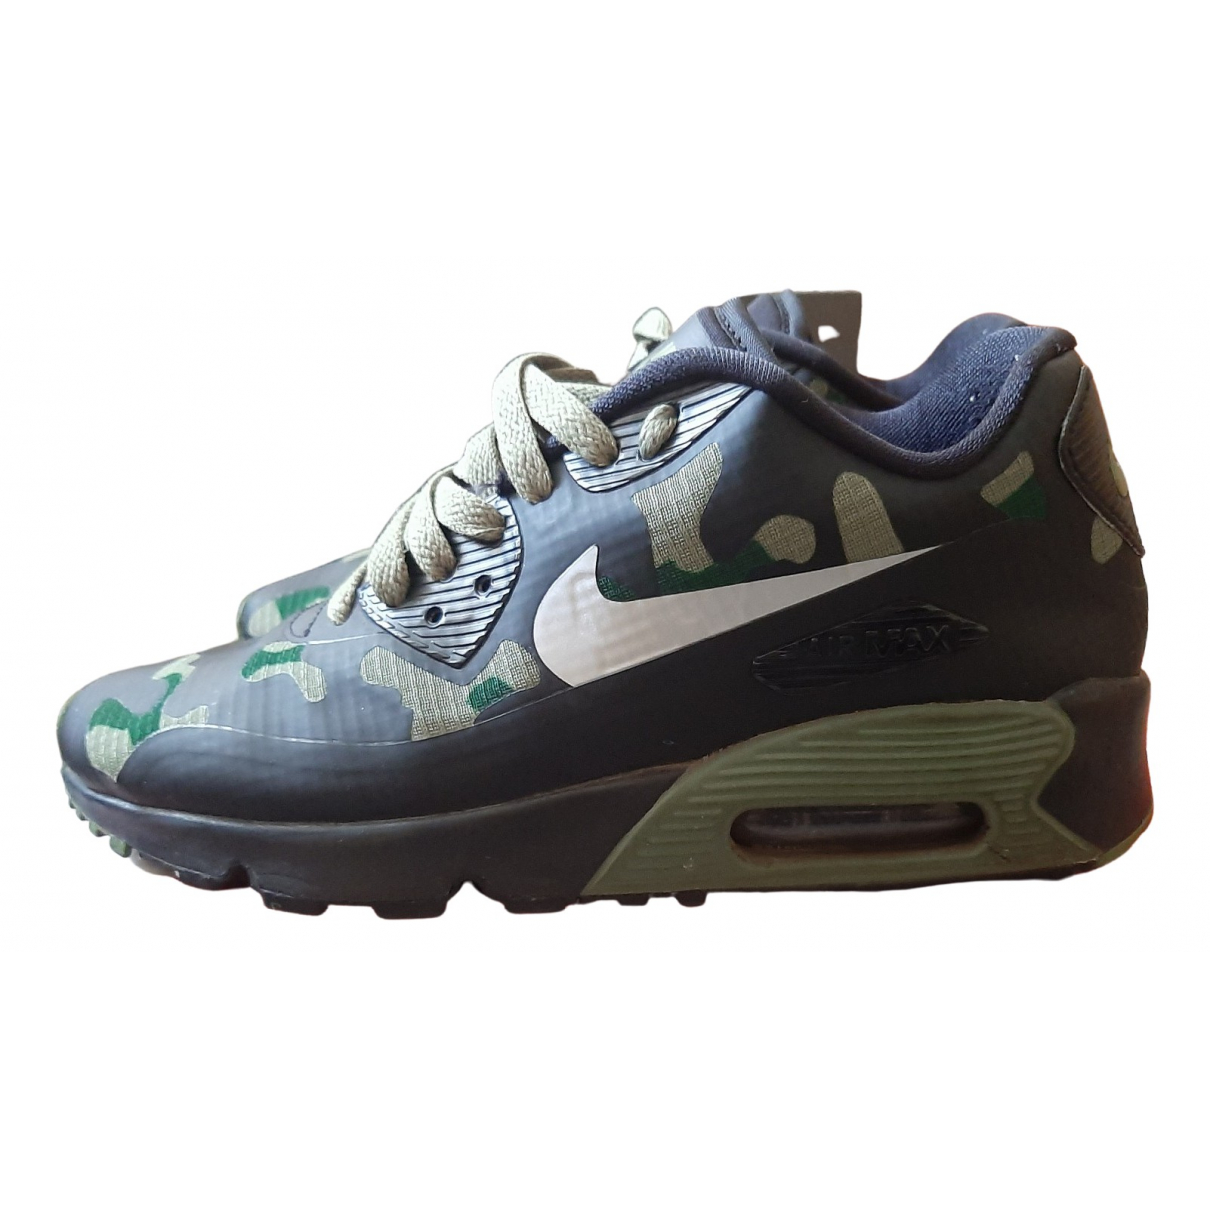 Nike Air Max 90 Multicolour Cloth Trainers for Women 4 UK